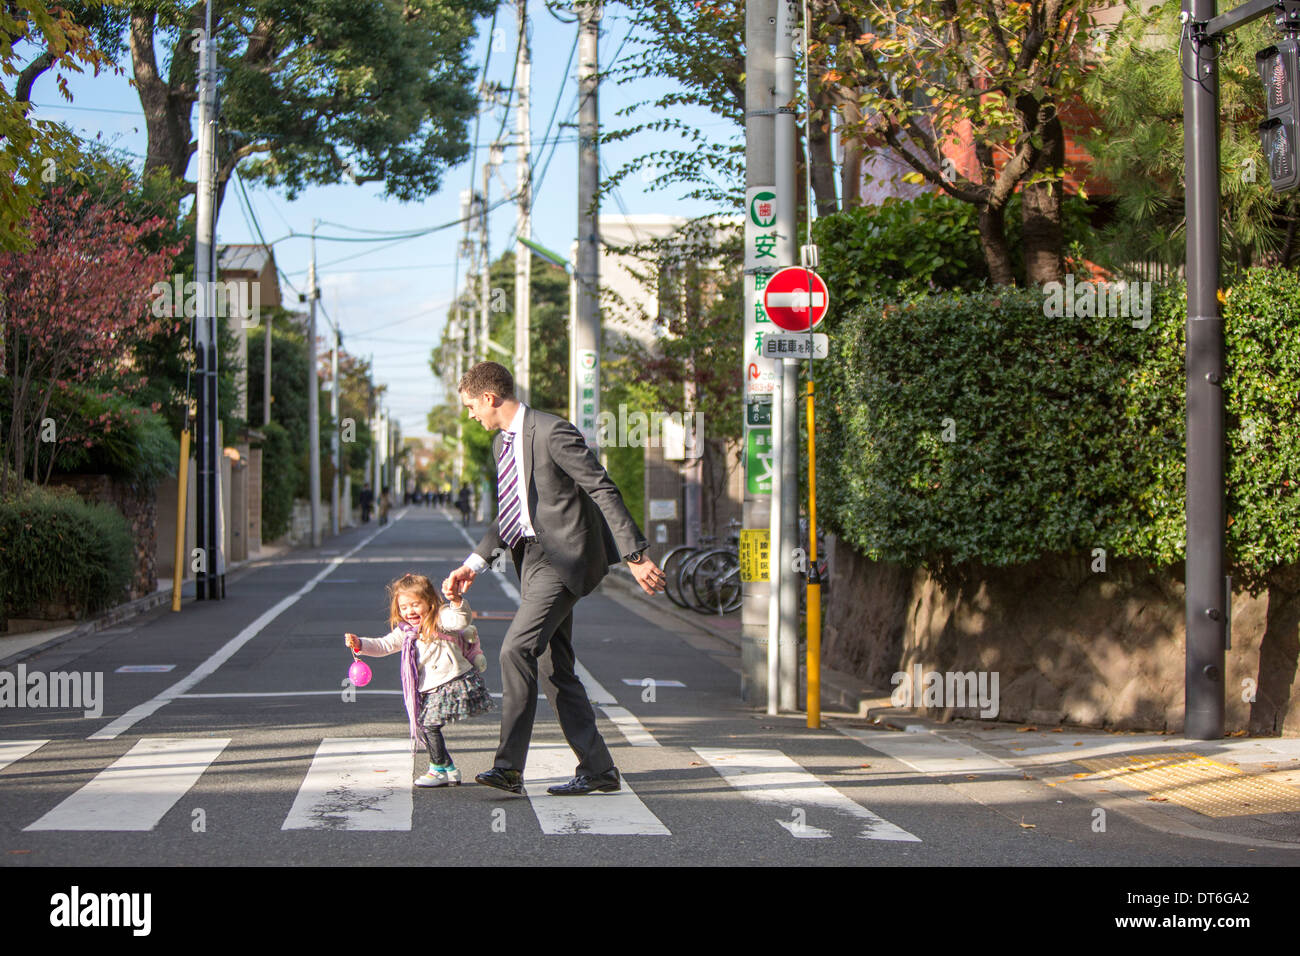 Father and daughter crossing zebra crossing Stock Photo